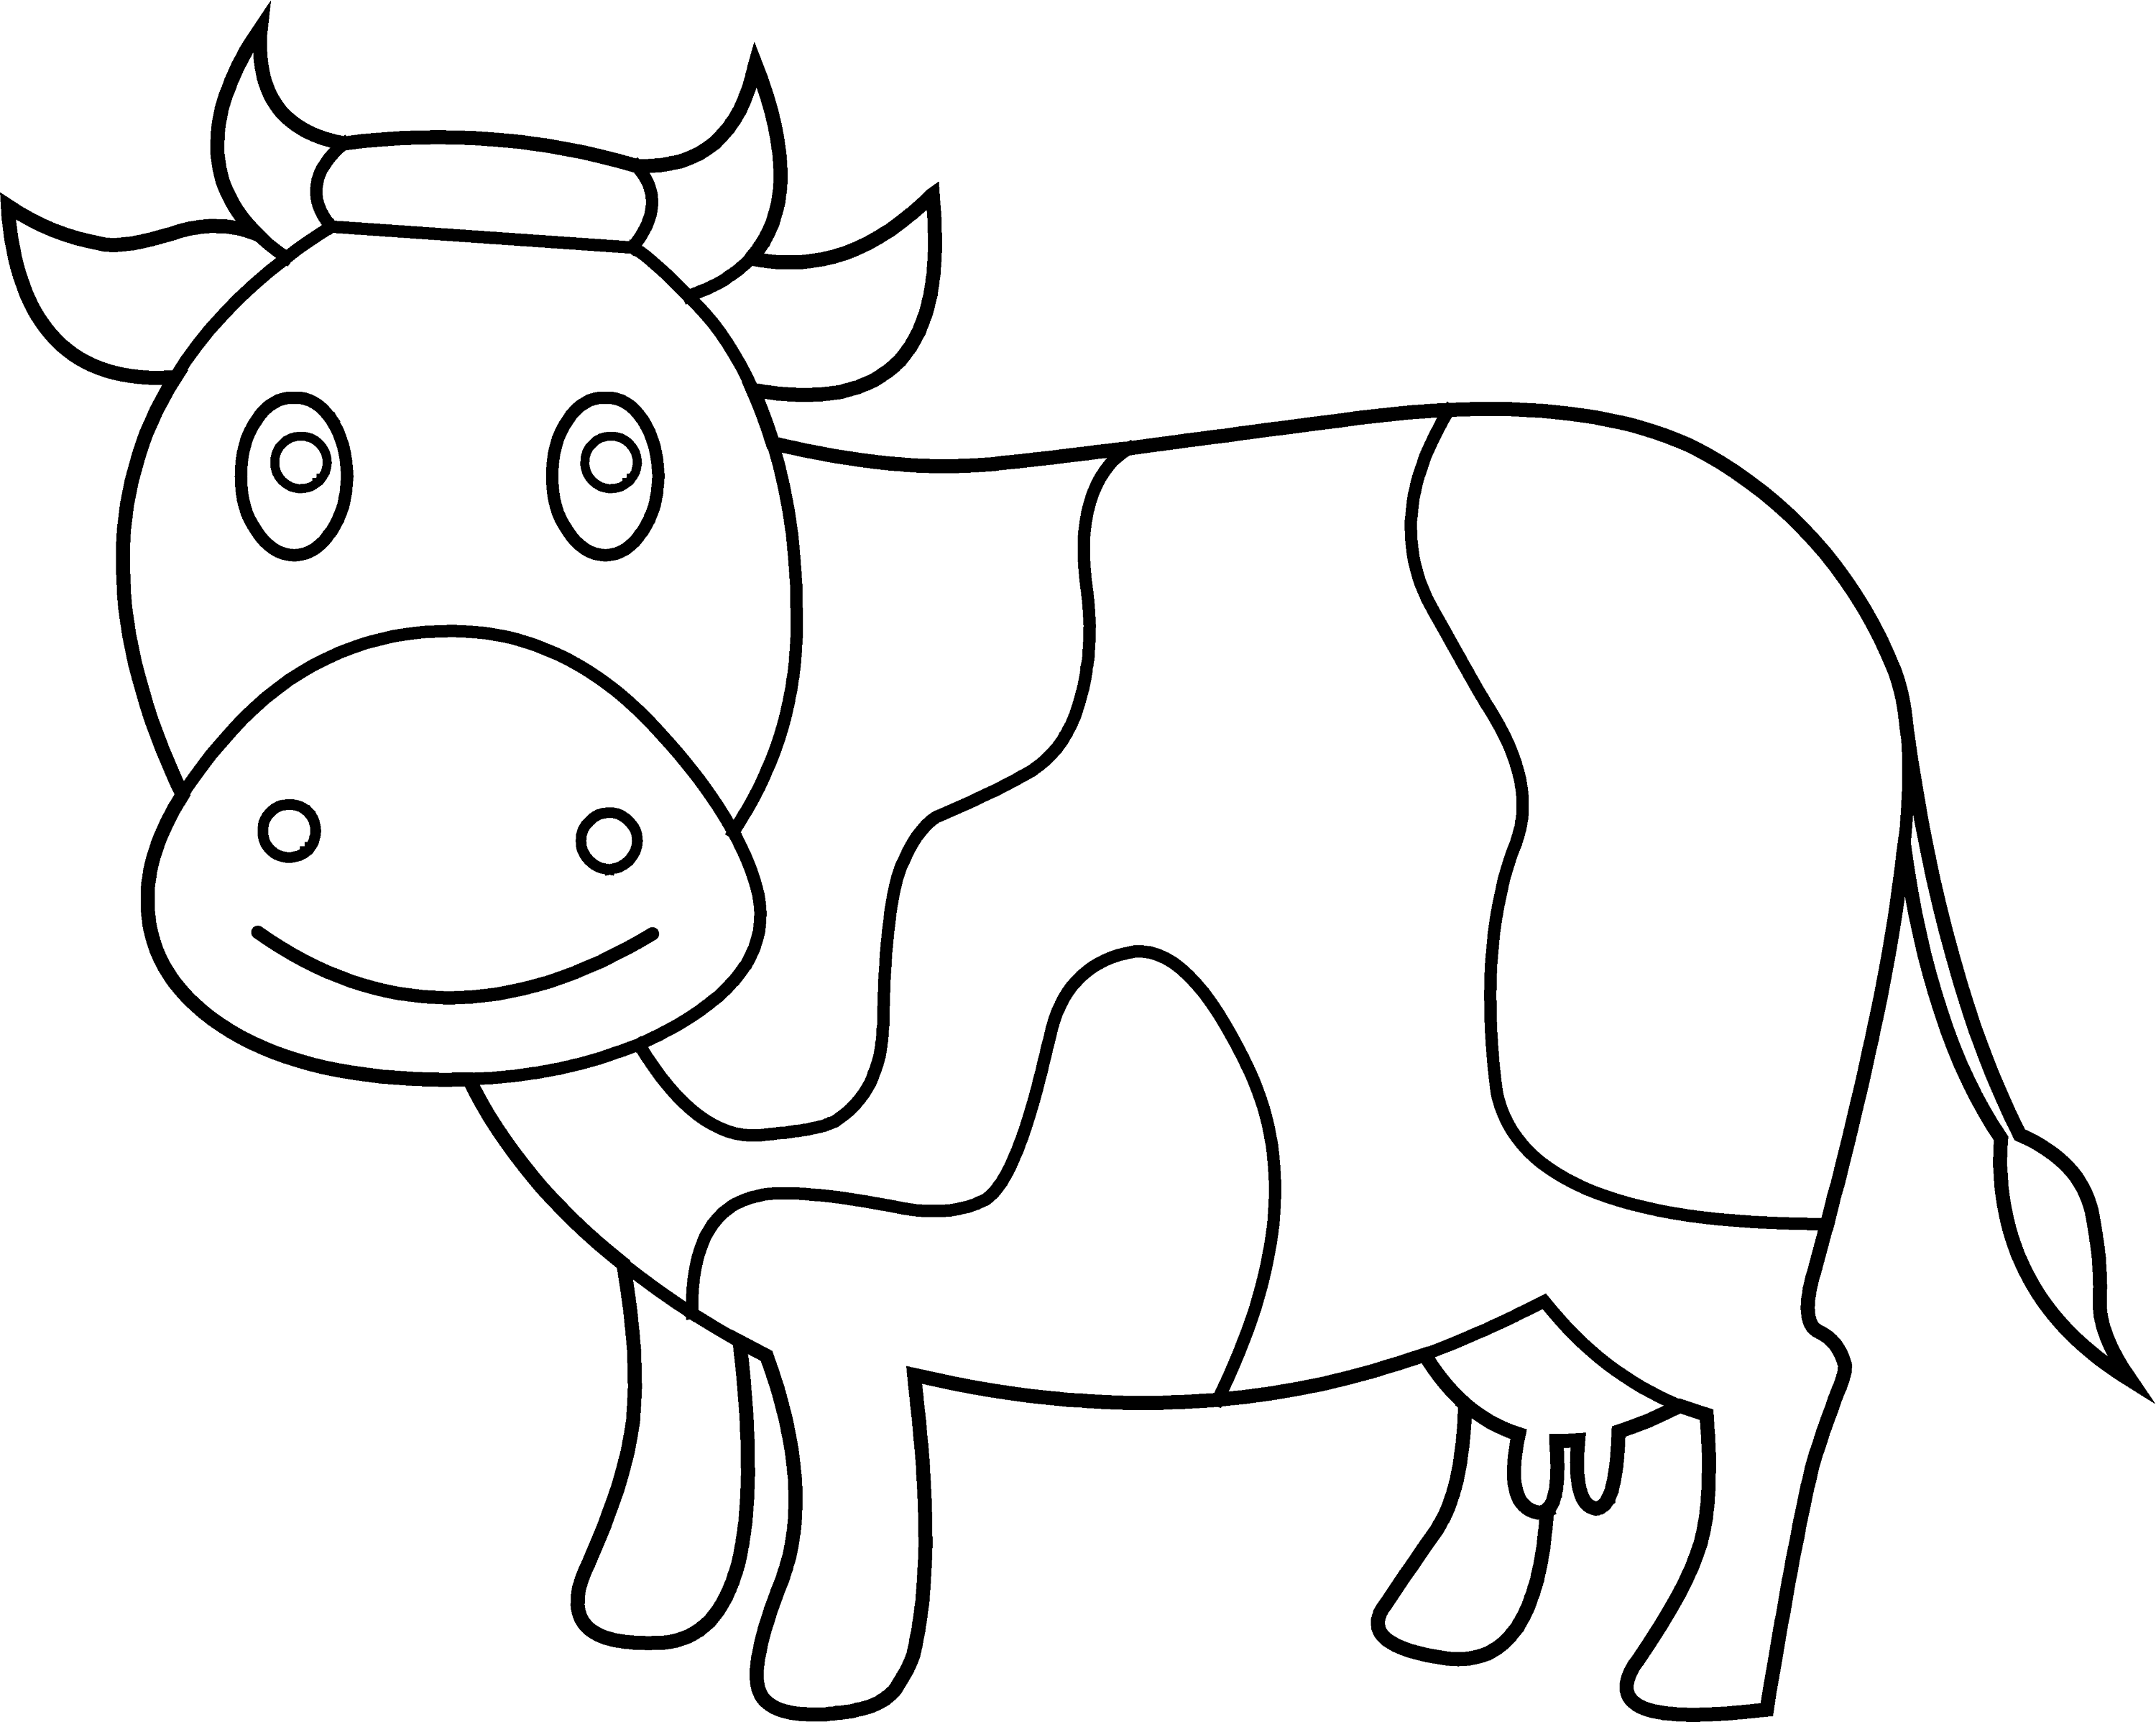 cow pictures to color cow coloring pages at getcoloringscom free printable cow to color pictures